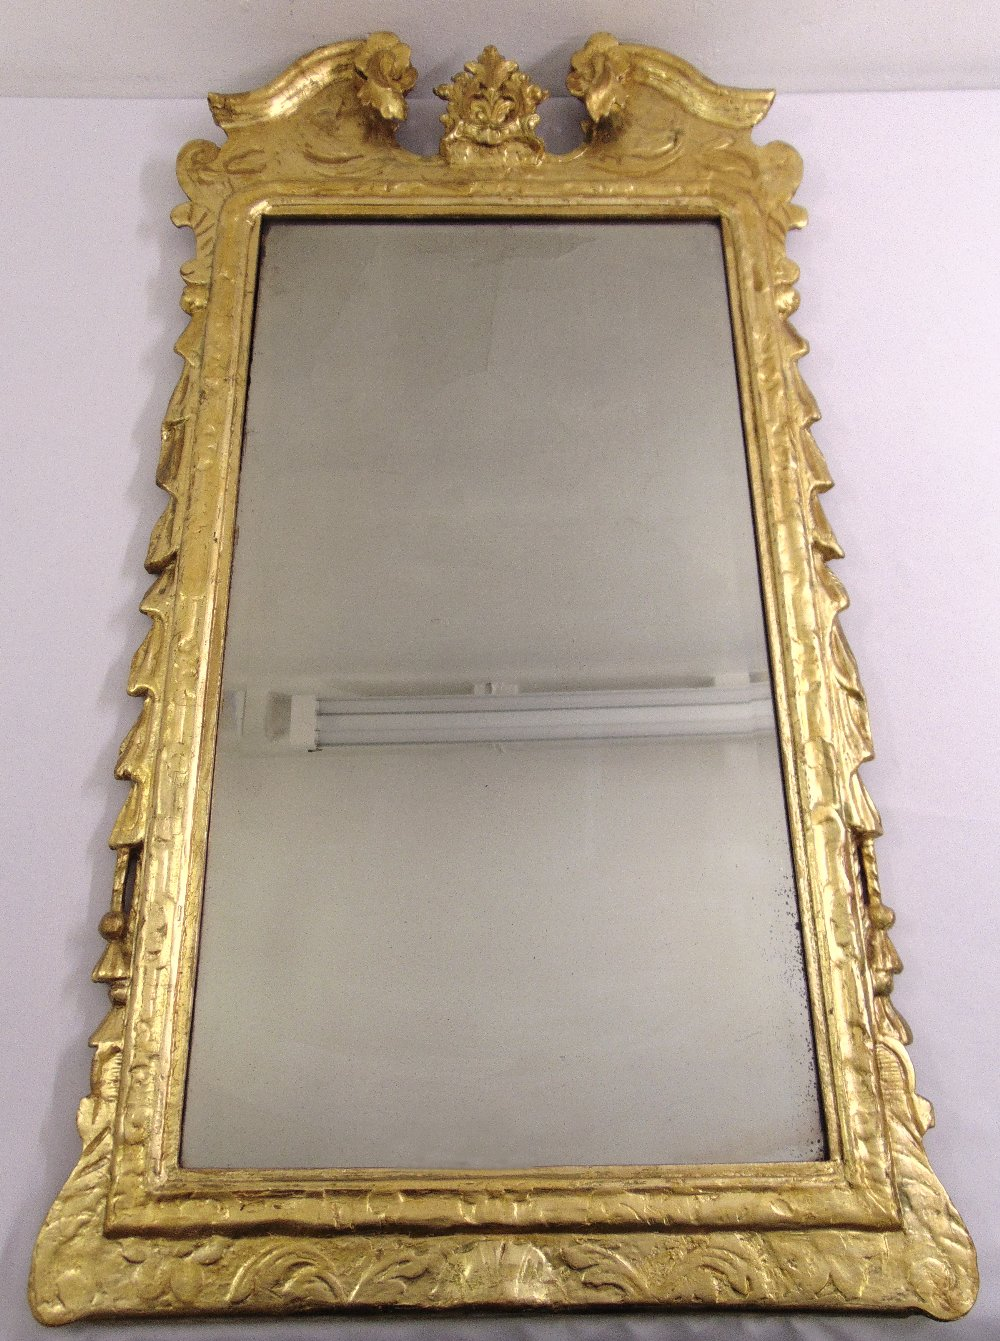 Lot 39 - A George I gilded gesso mirror with rectangular bevelled plate, the frame carved and moulded with